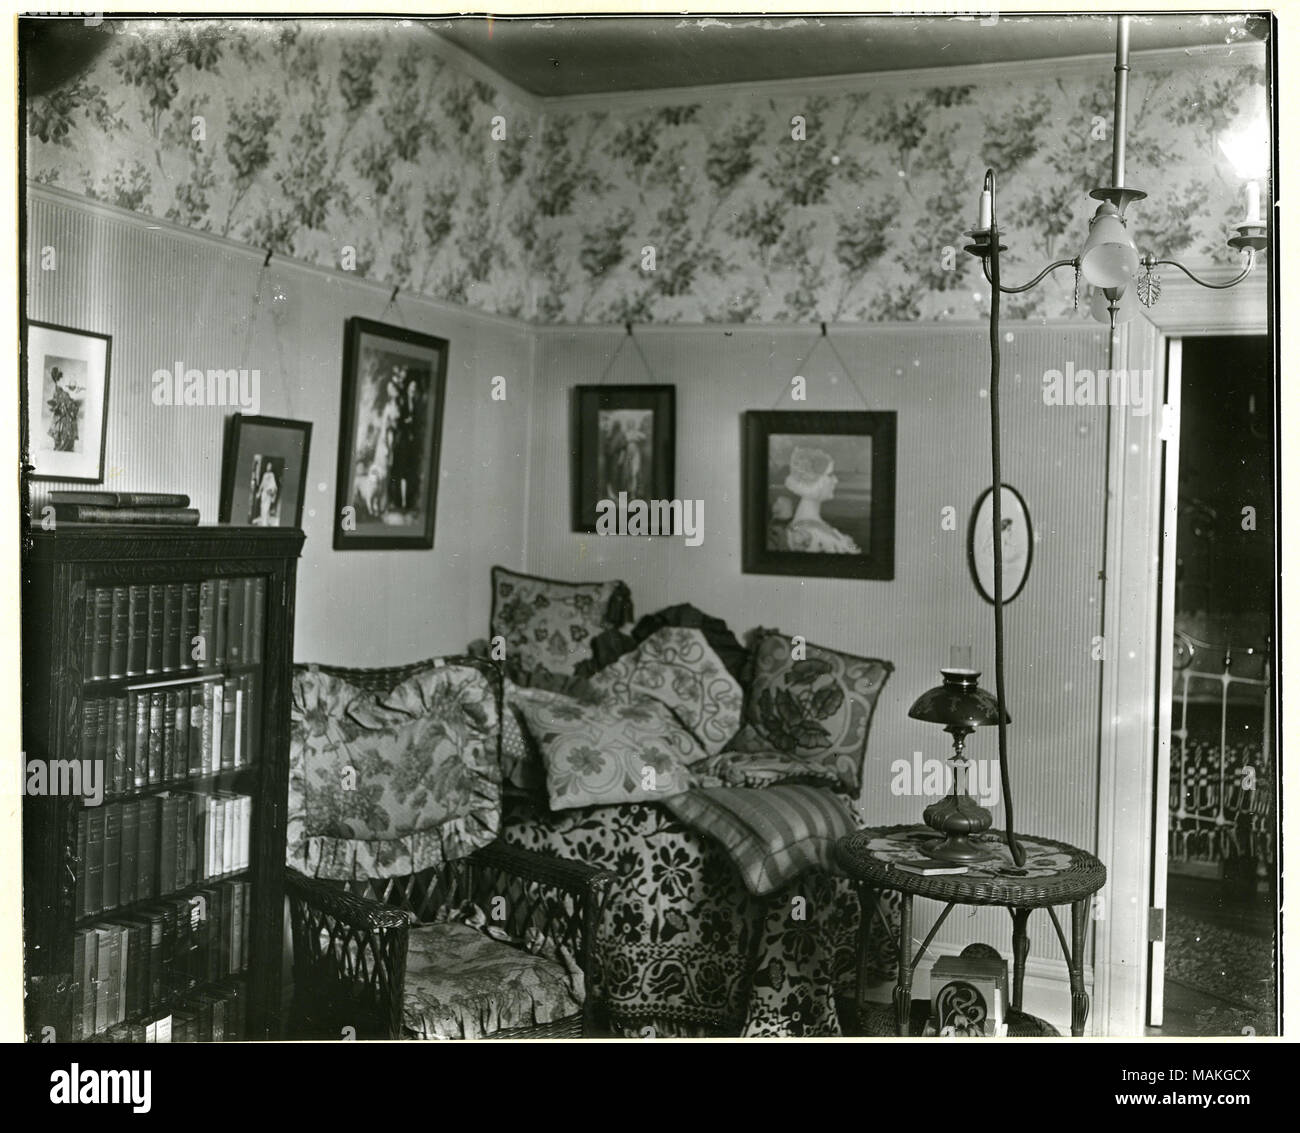 Horizontal Black And White Photograph Showing A Parlor